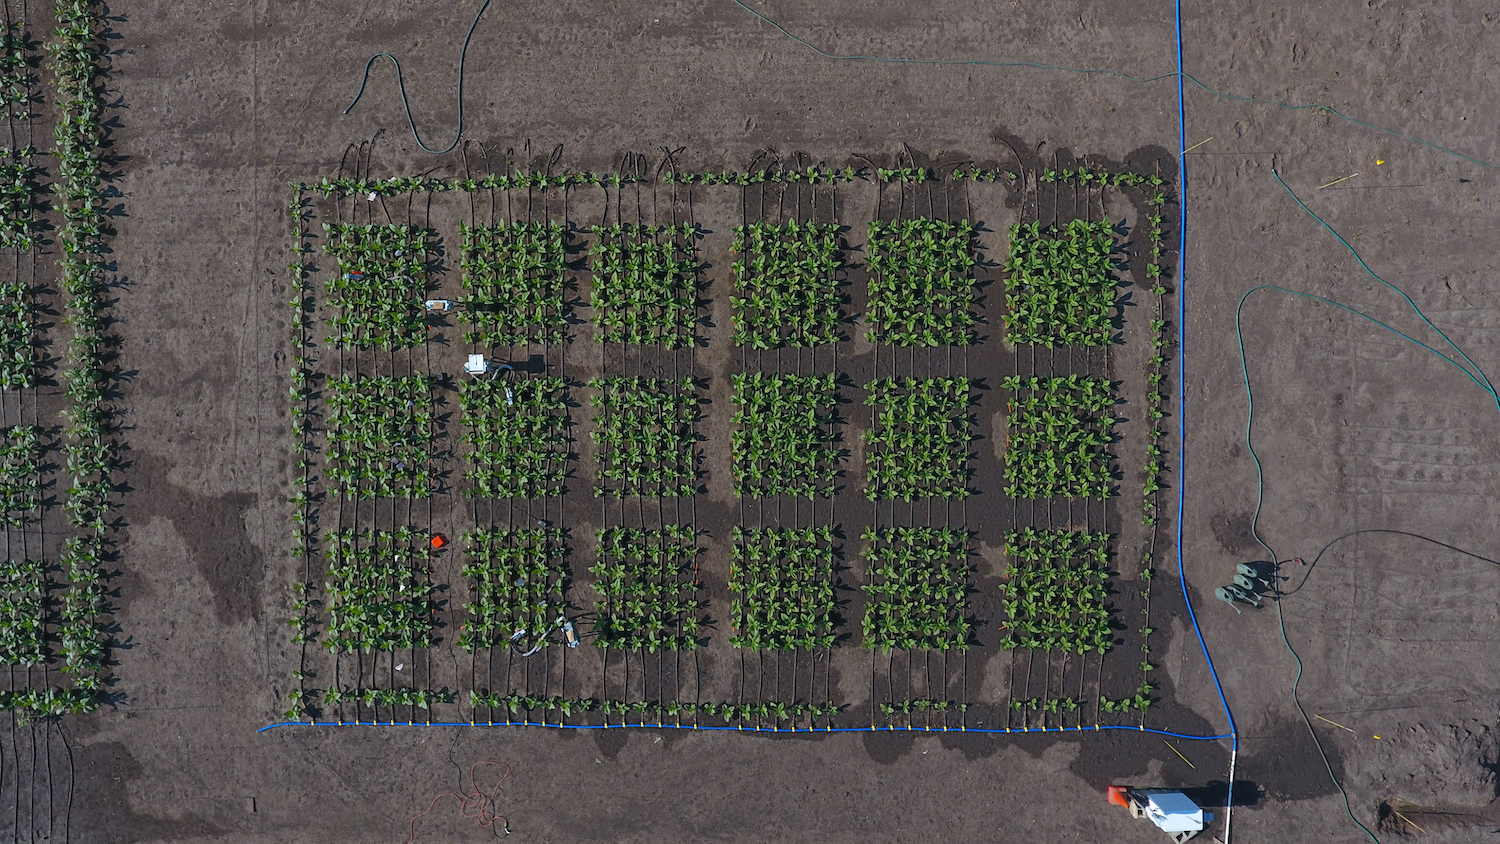 2017 essex field trials aerial